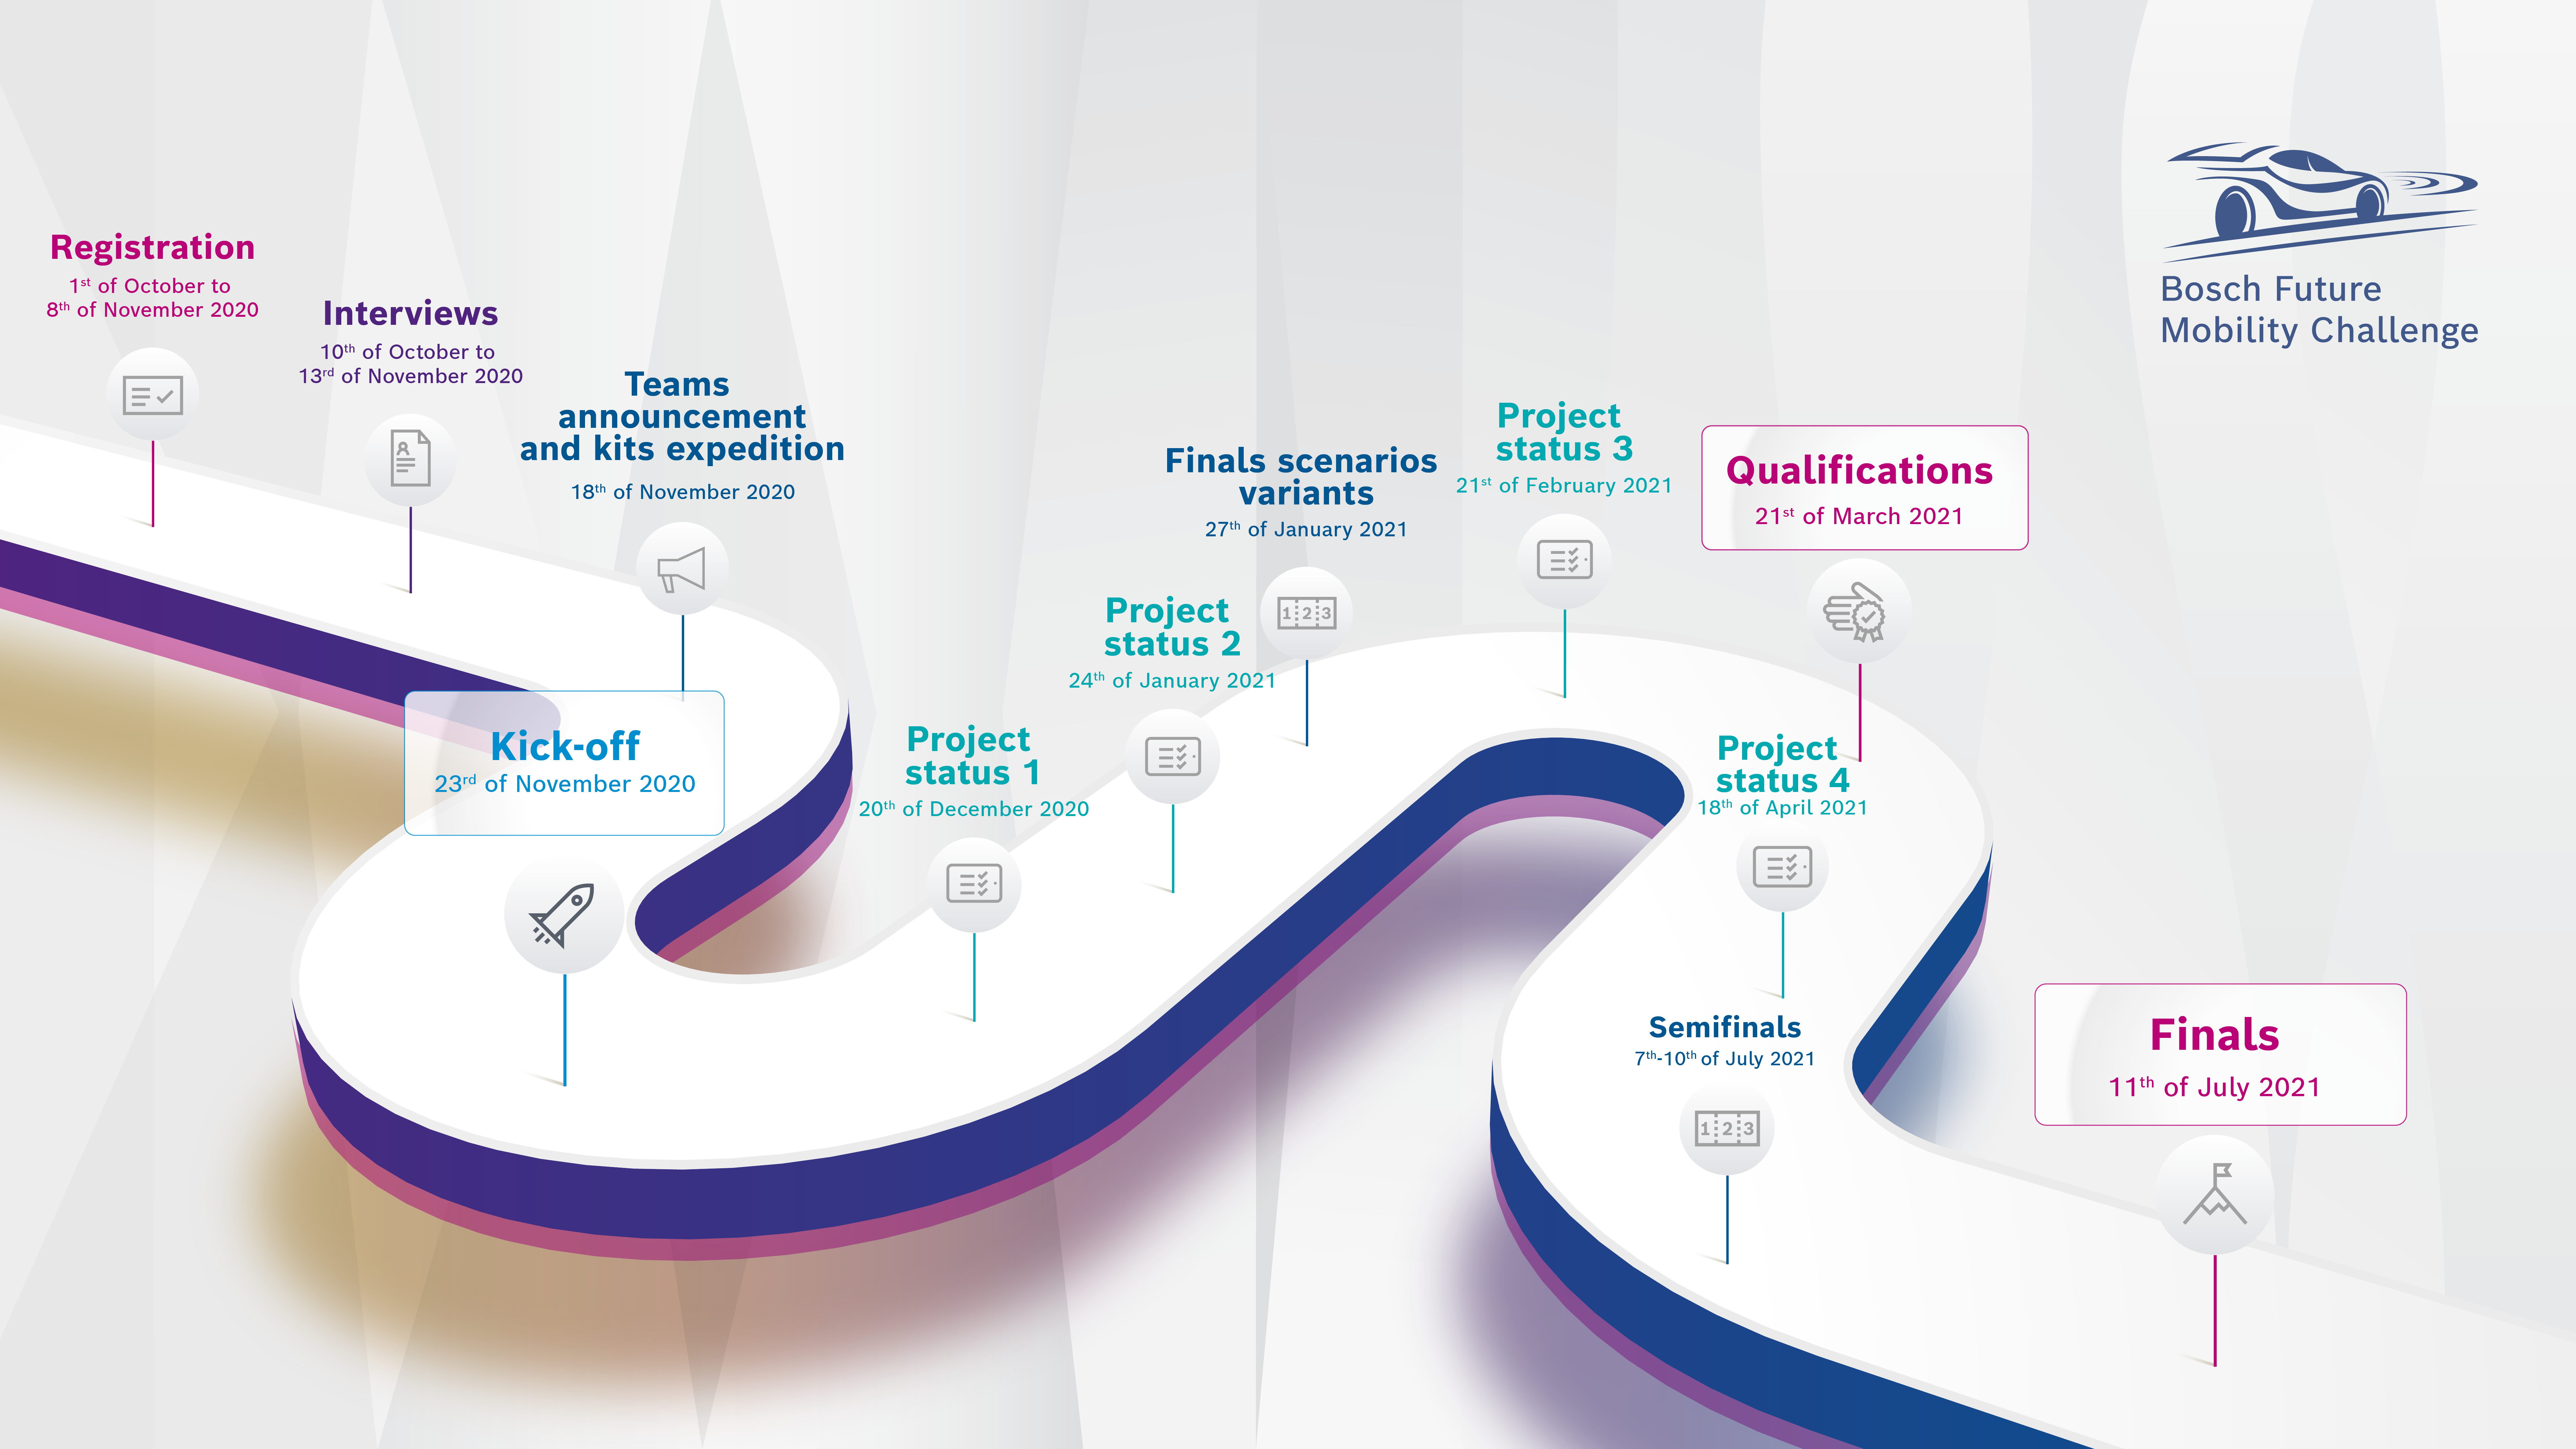 Timeline Bosch Future Mobility Challenge